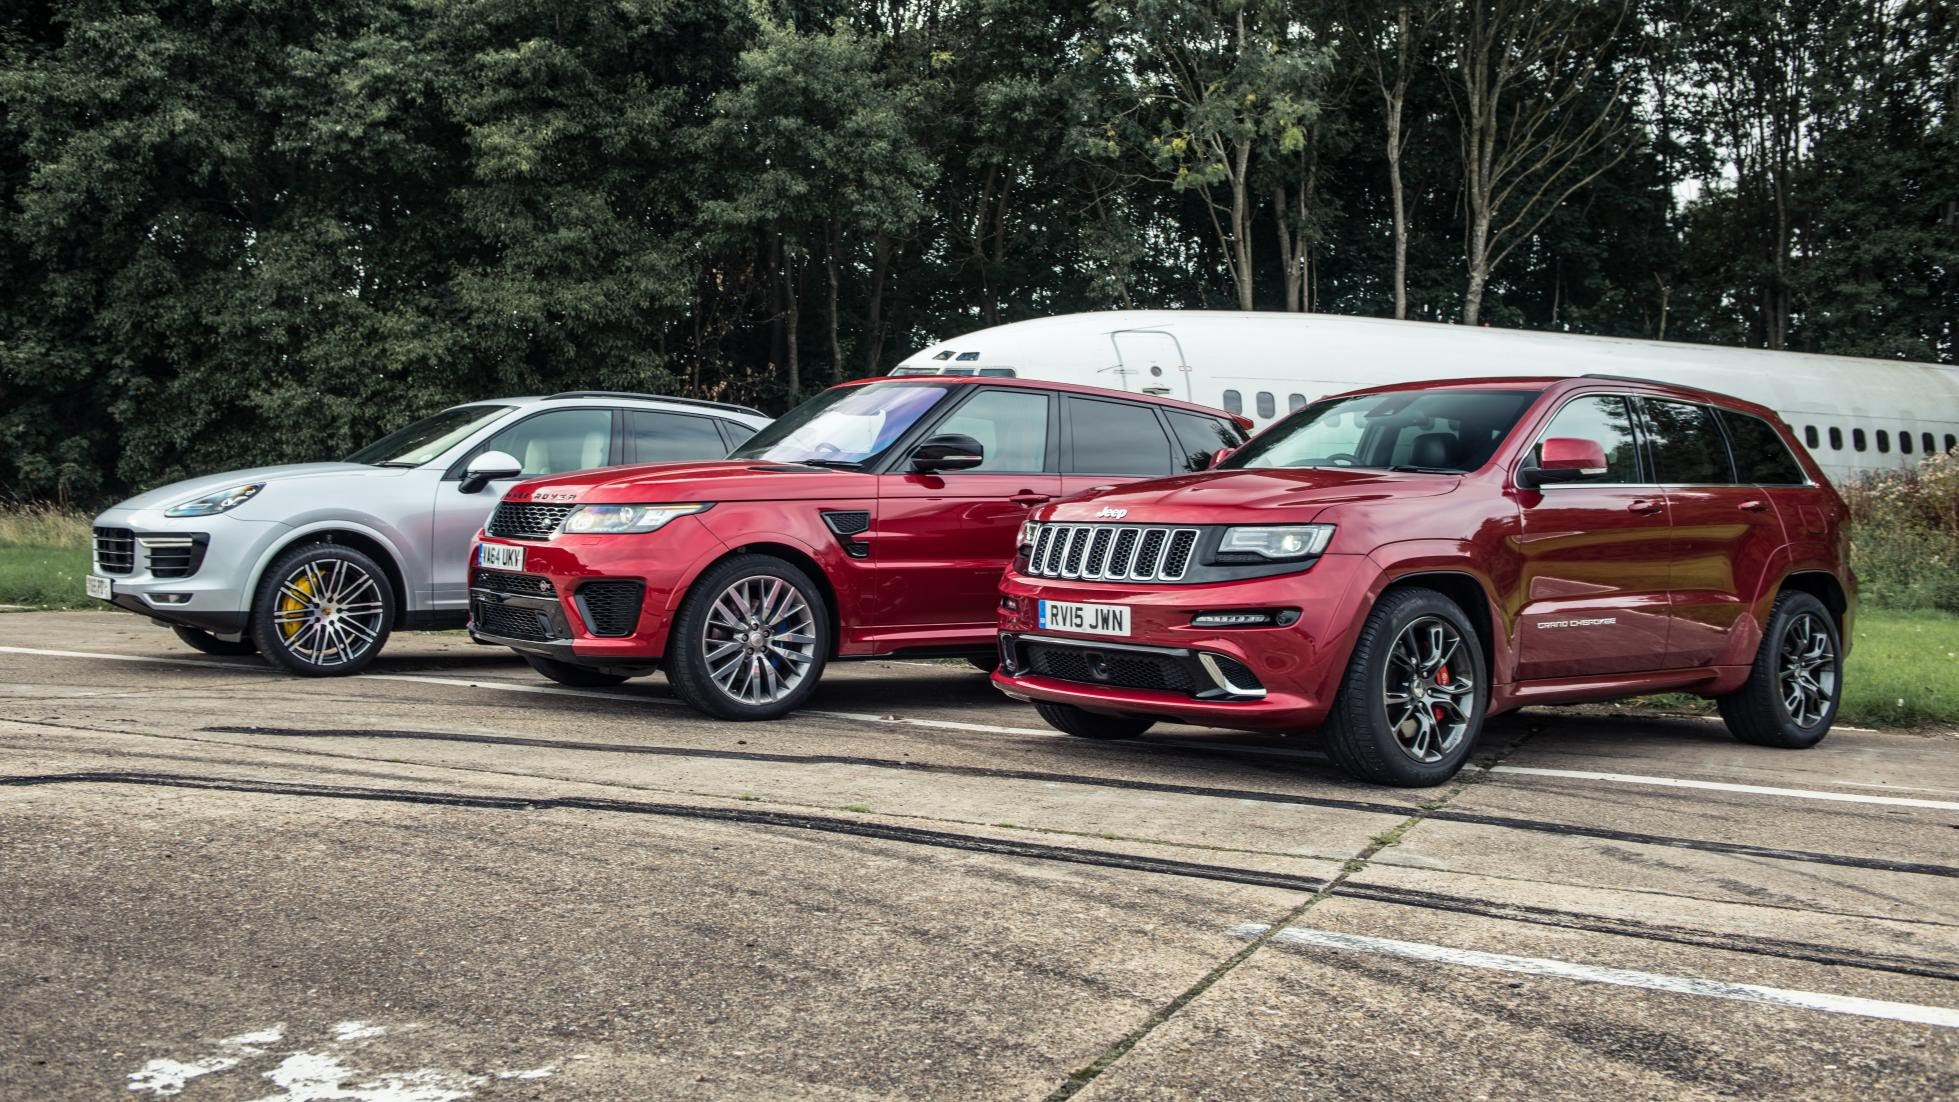 Cayenne turbo takes on rr sport svr and jeep grand cherokee srt in drag race